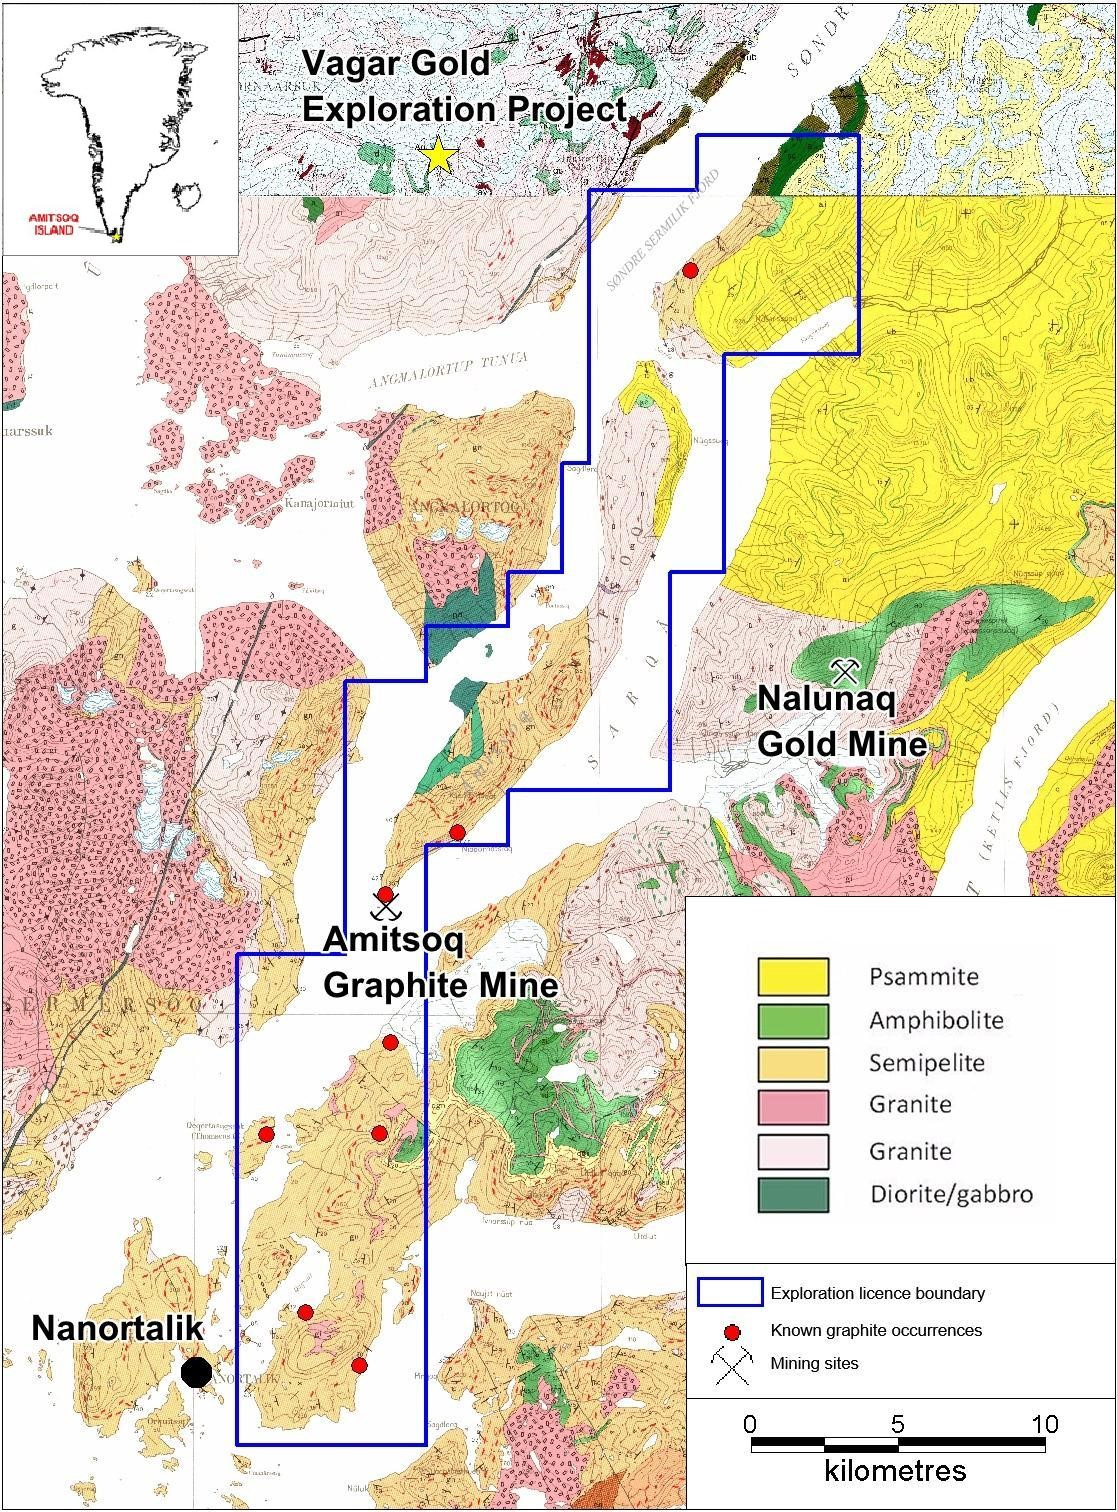 Artemis sells interest in Amitsoq graphite project to fund WA exploration ventures